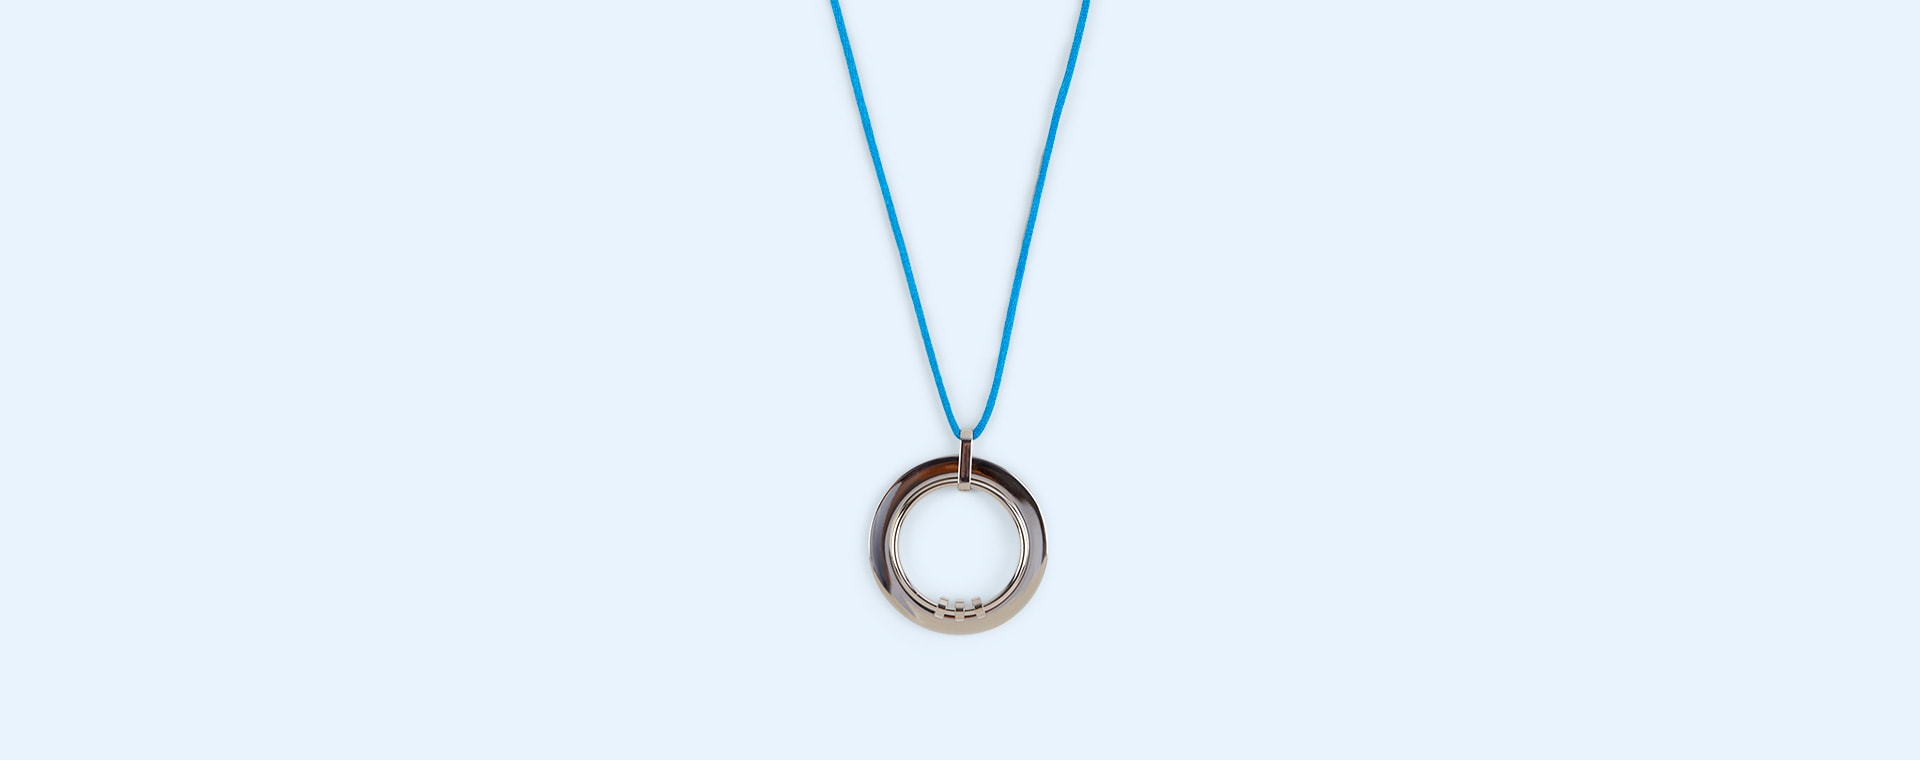 Blue Yummikeys Stainless Steel Feeding Necklace